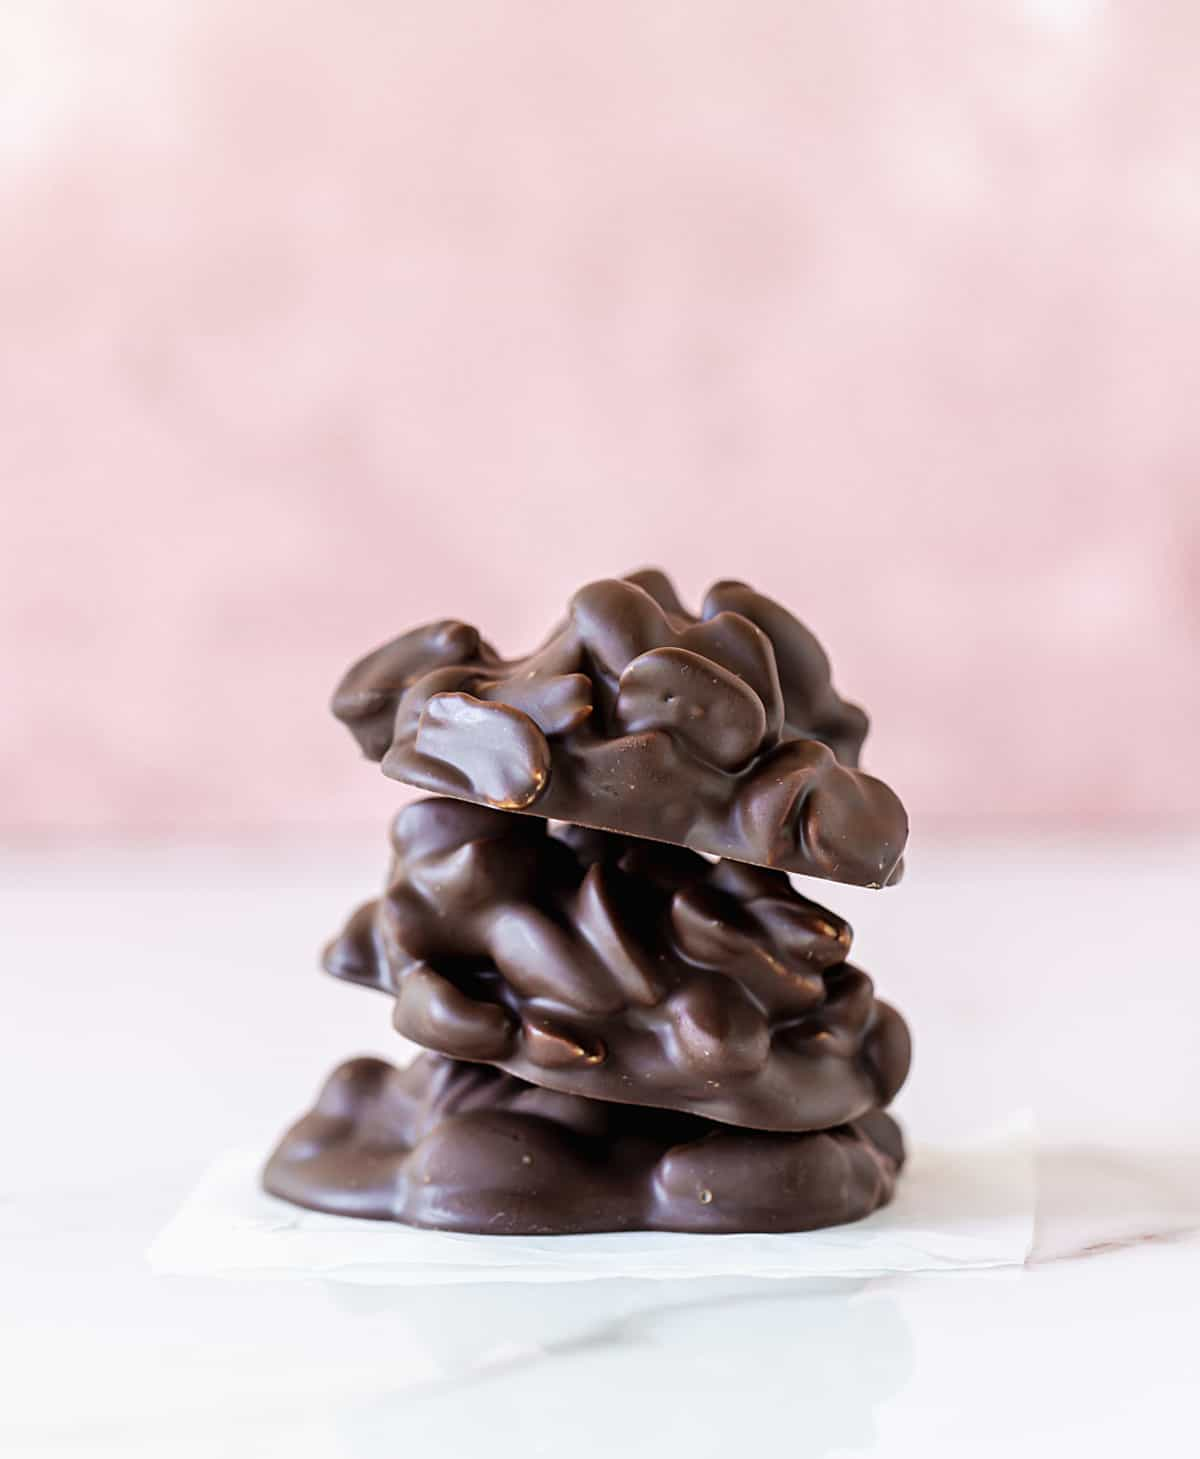 Stack of three chocolate peanut clusters on white and pink background